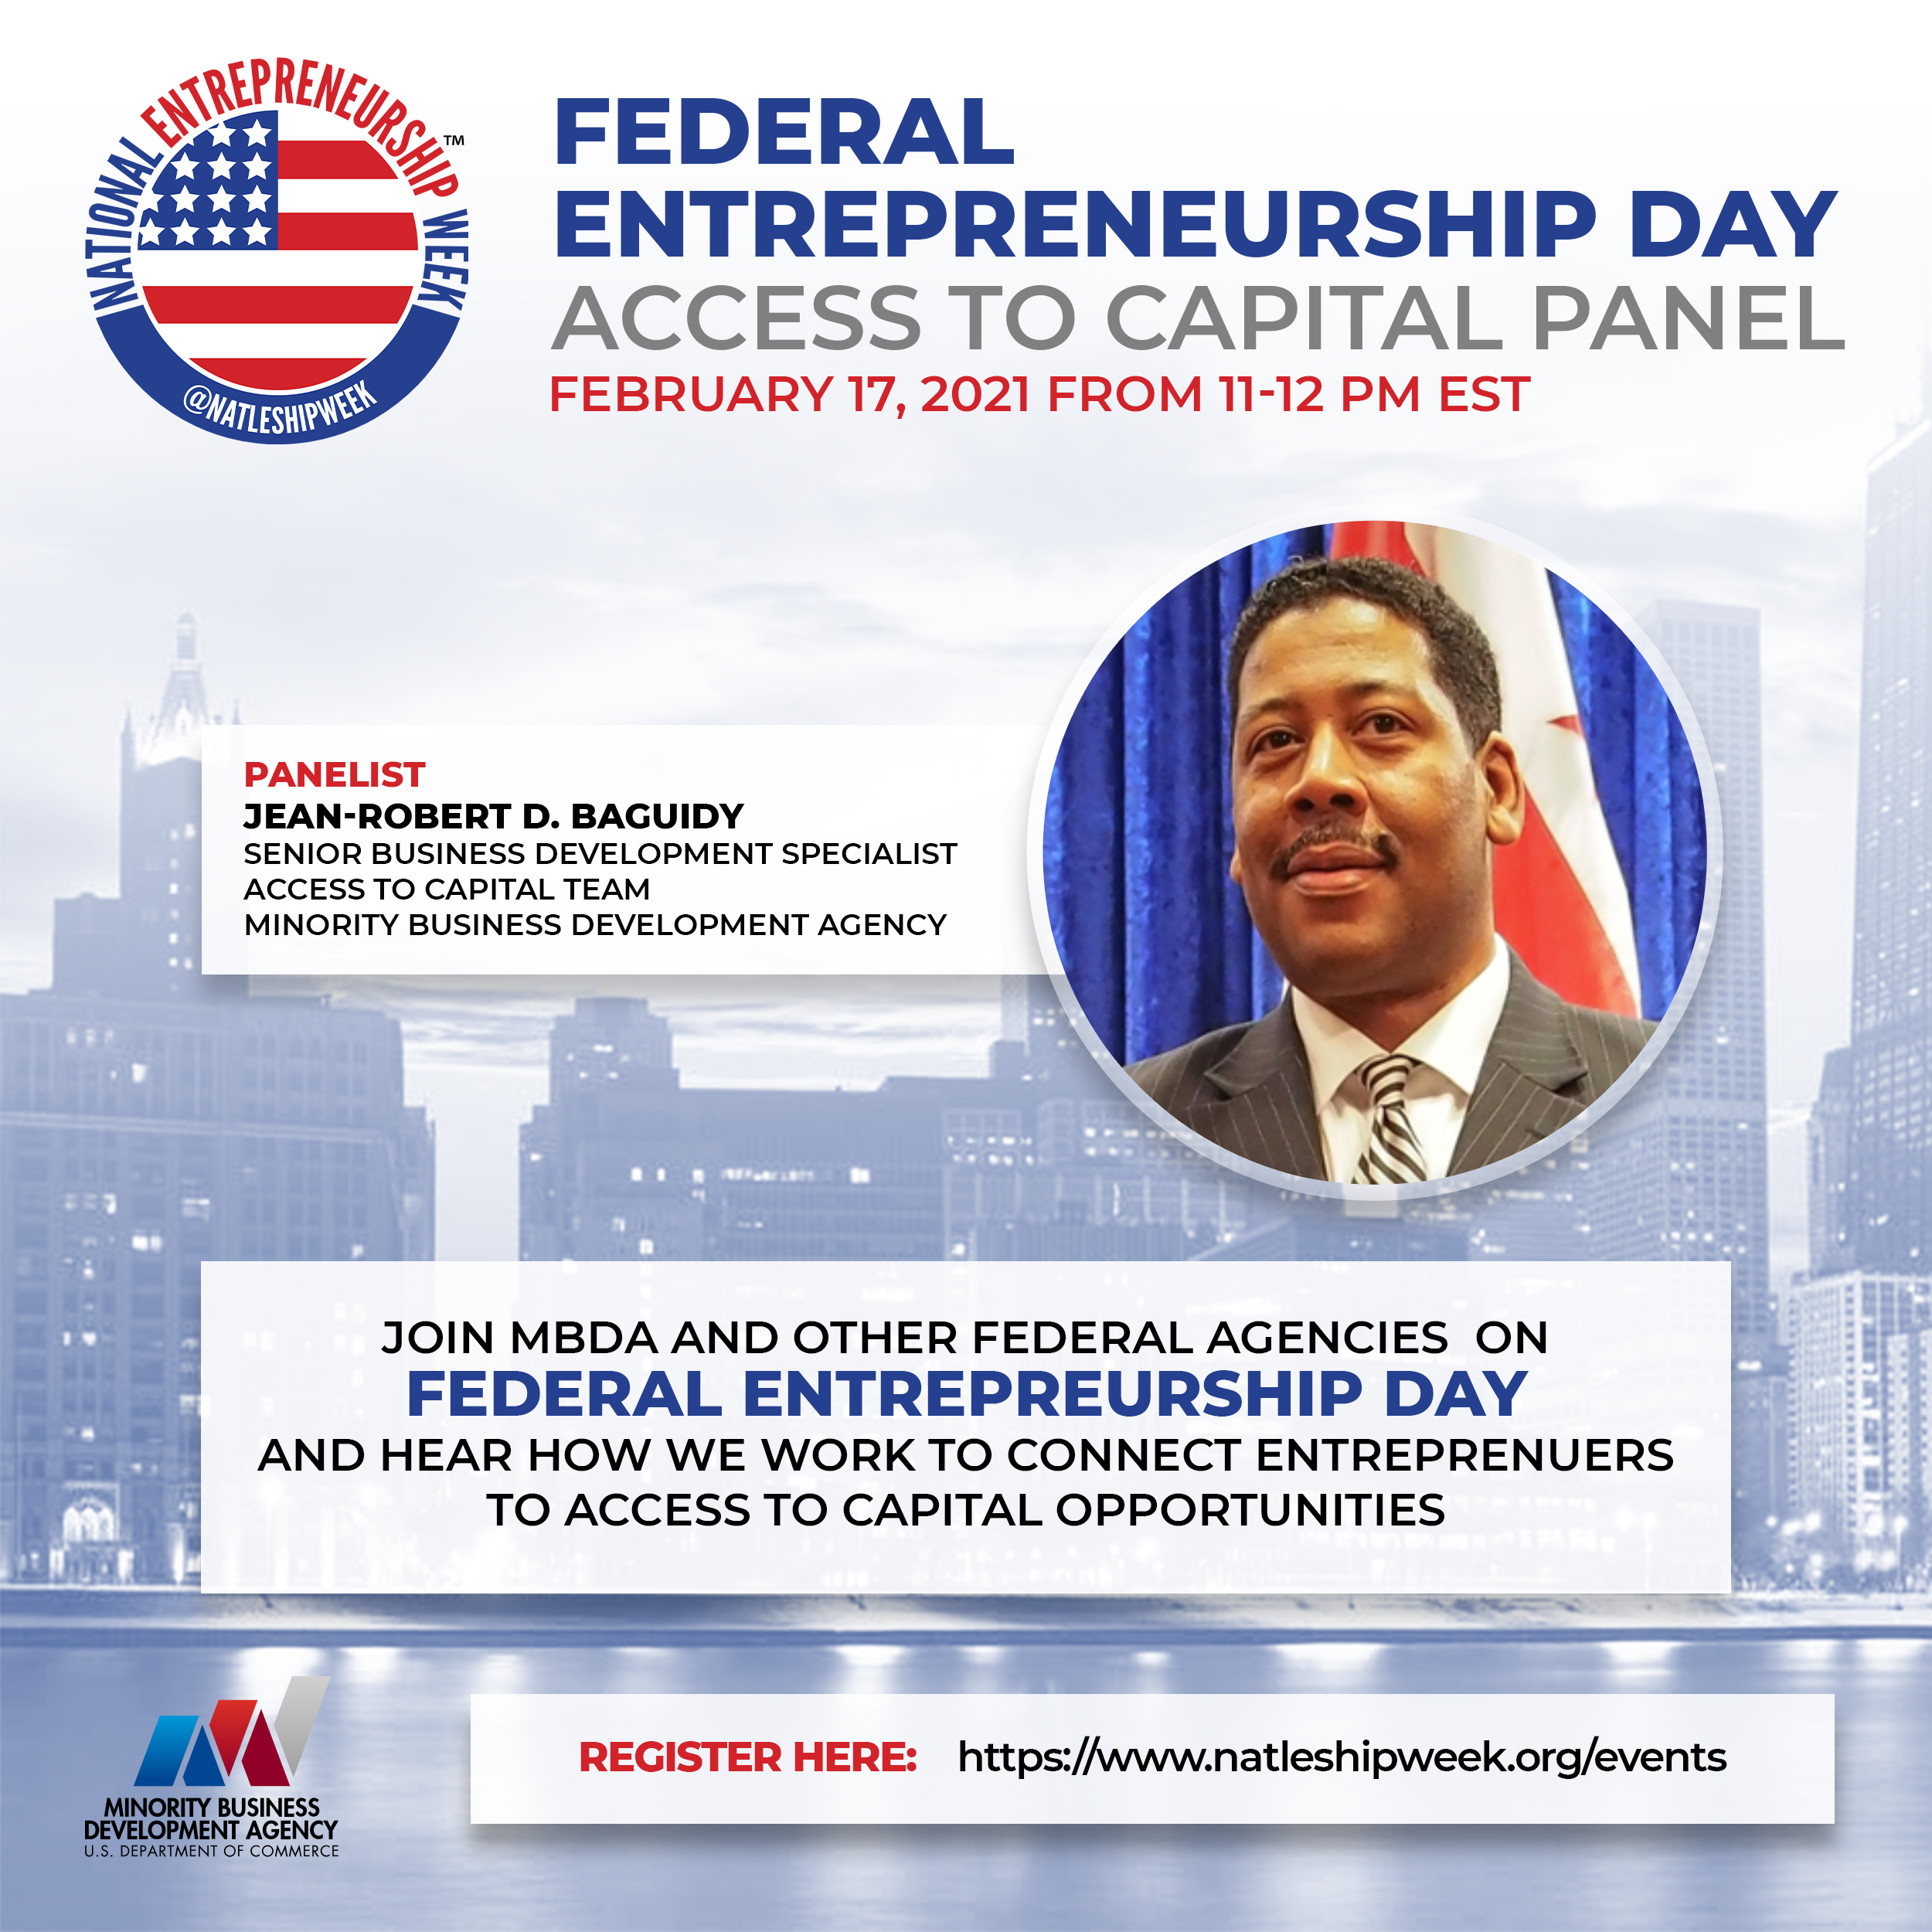 Access To Capital Panel